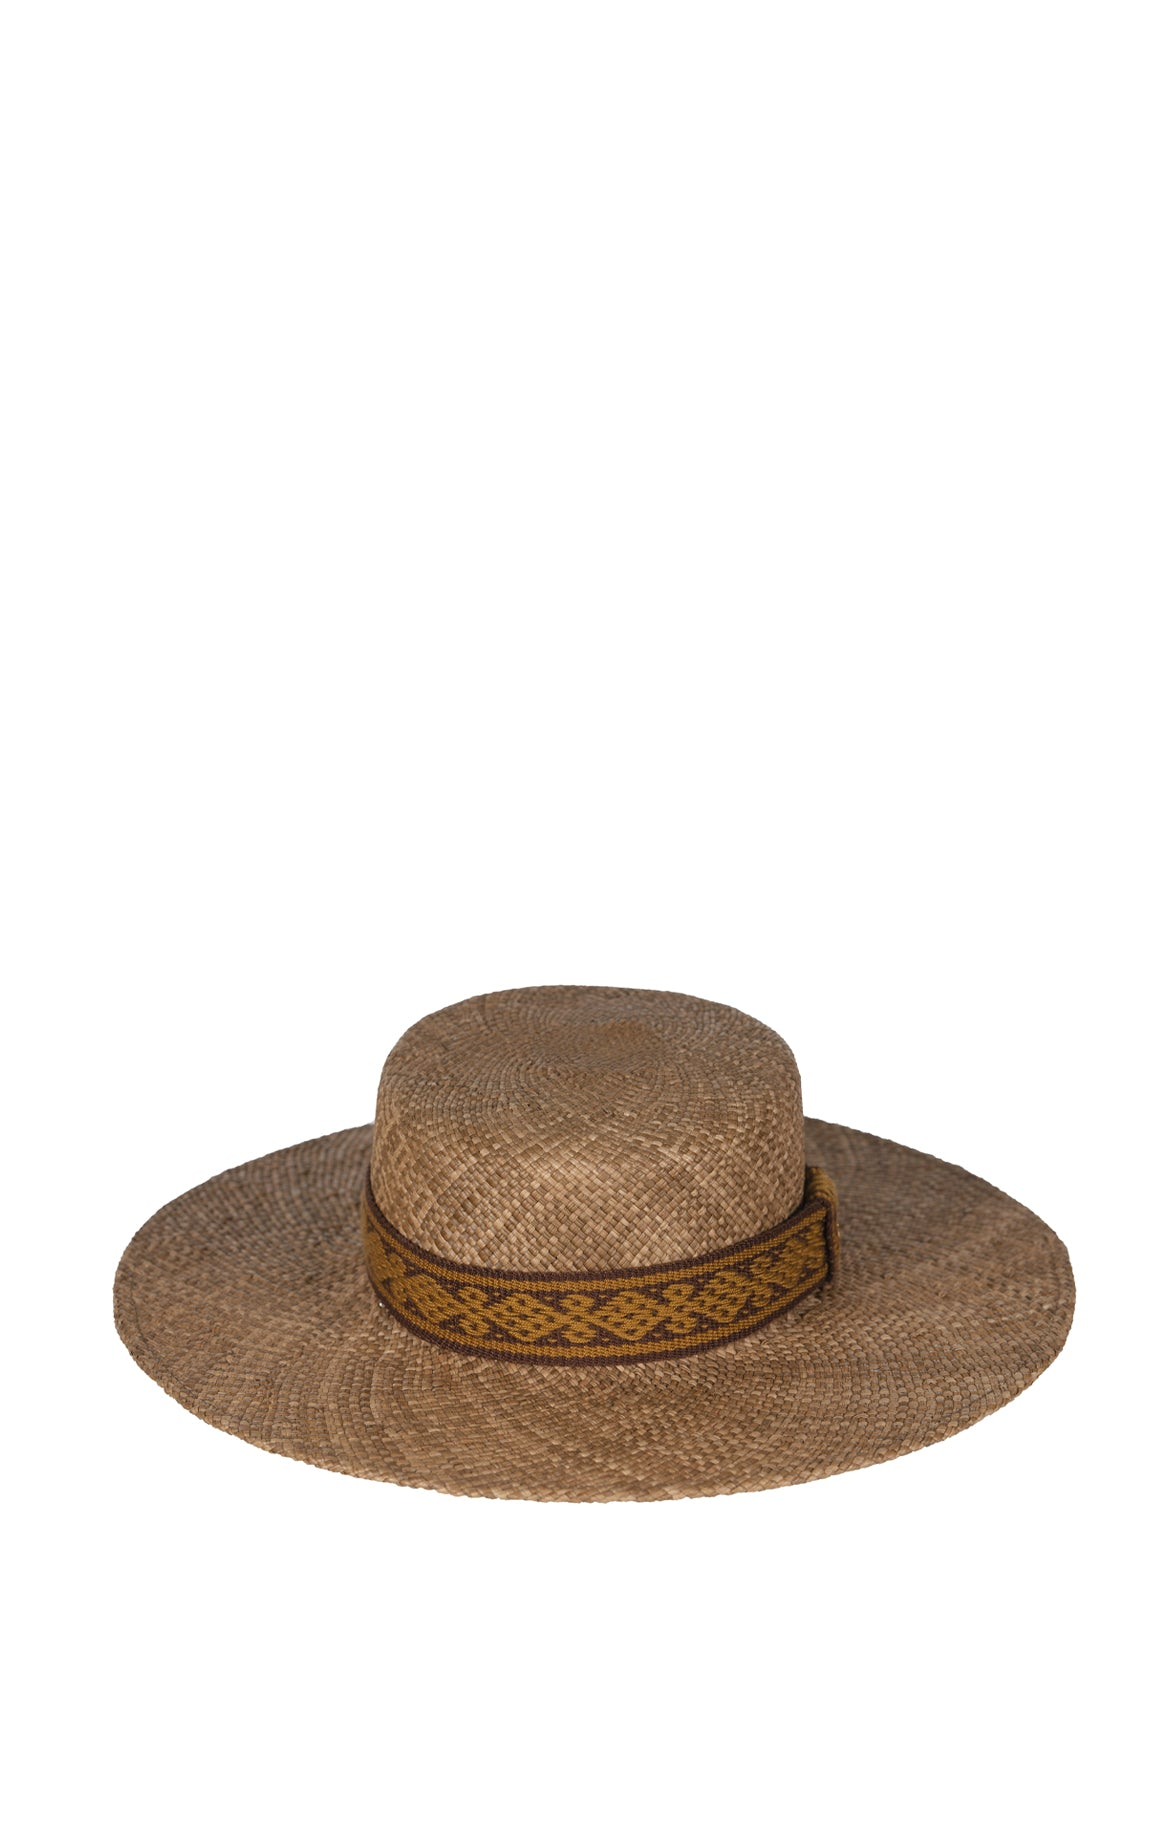 Sowing Straw Hat